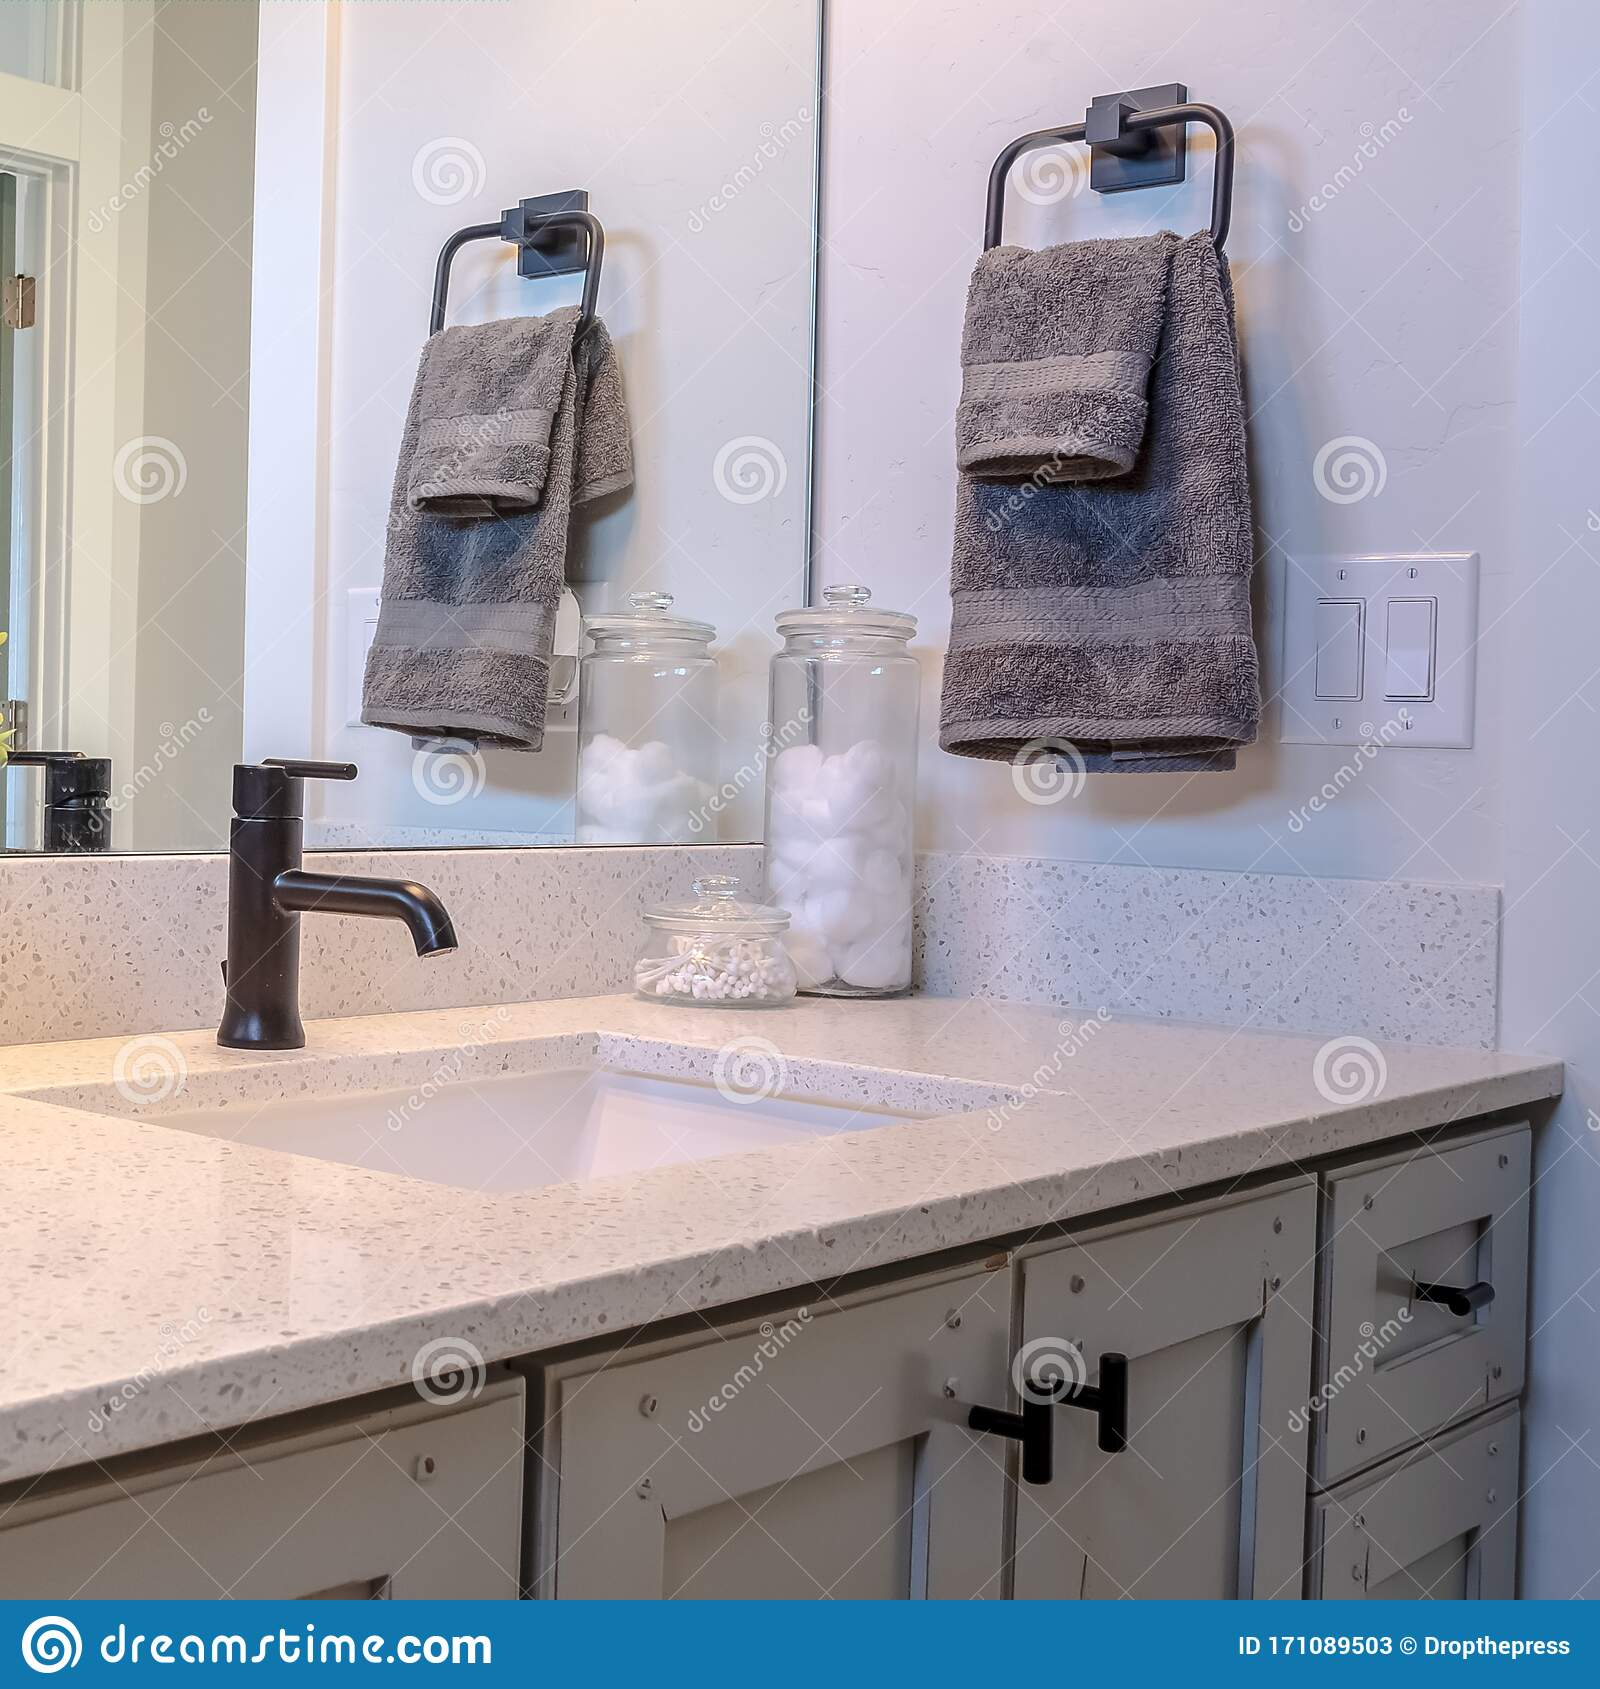 Photo Square Frame Bathroom Vanity Cabinet With Sink Black Faucet Ornamental Plant And Mirror Stock Image Image Of Faucet Drawers 171089503